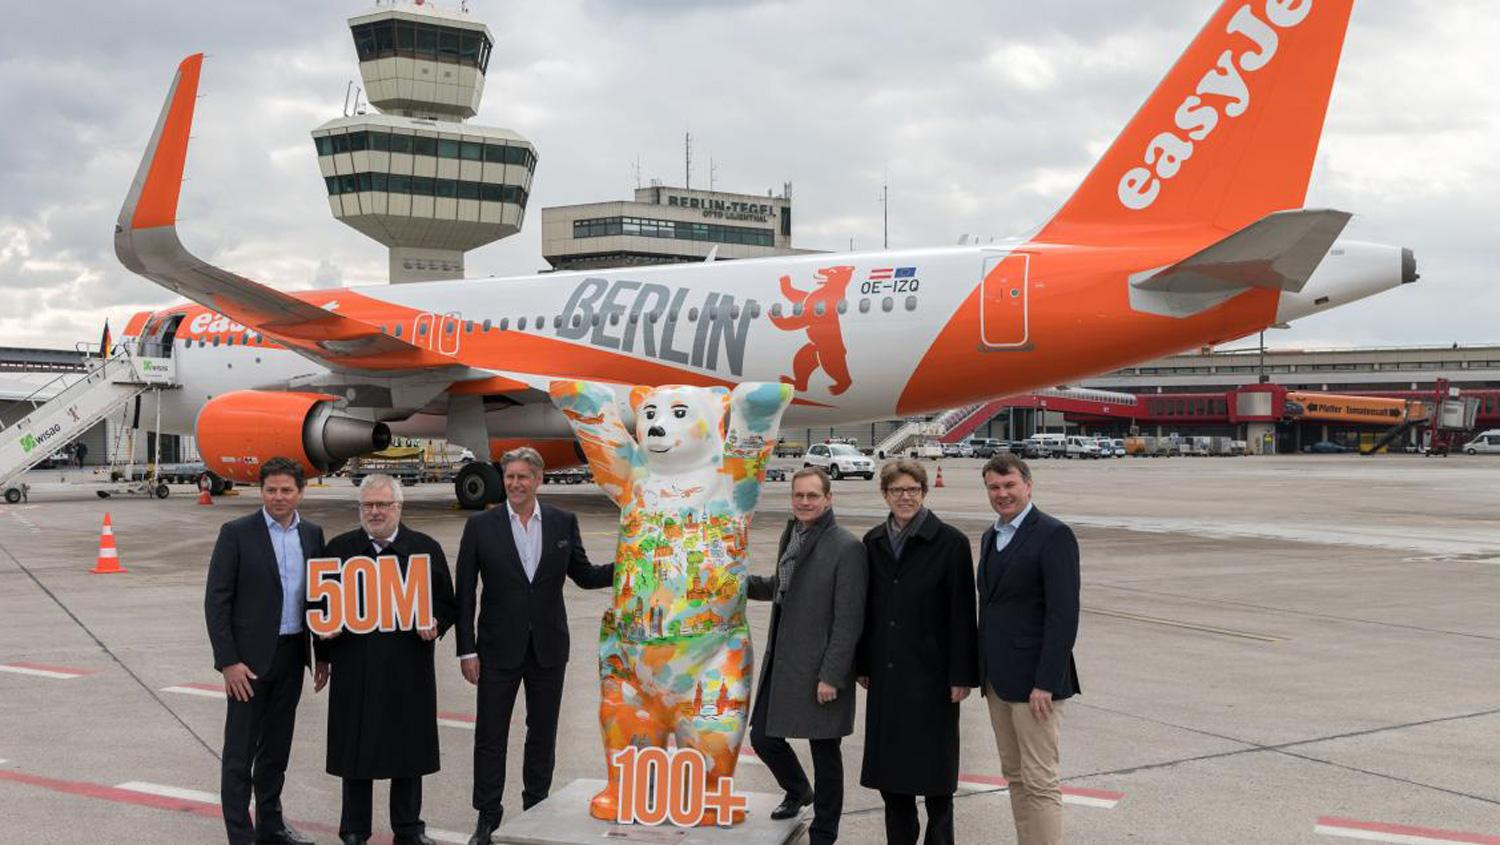 Easyjet executives and Berlin officials present the new 'home carrier'